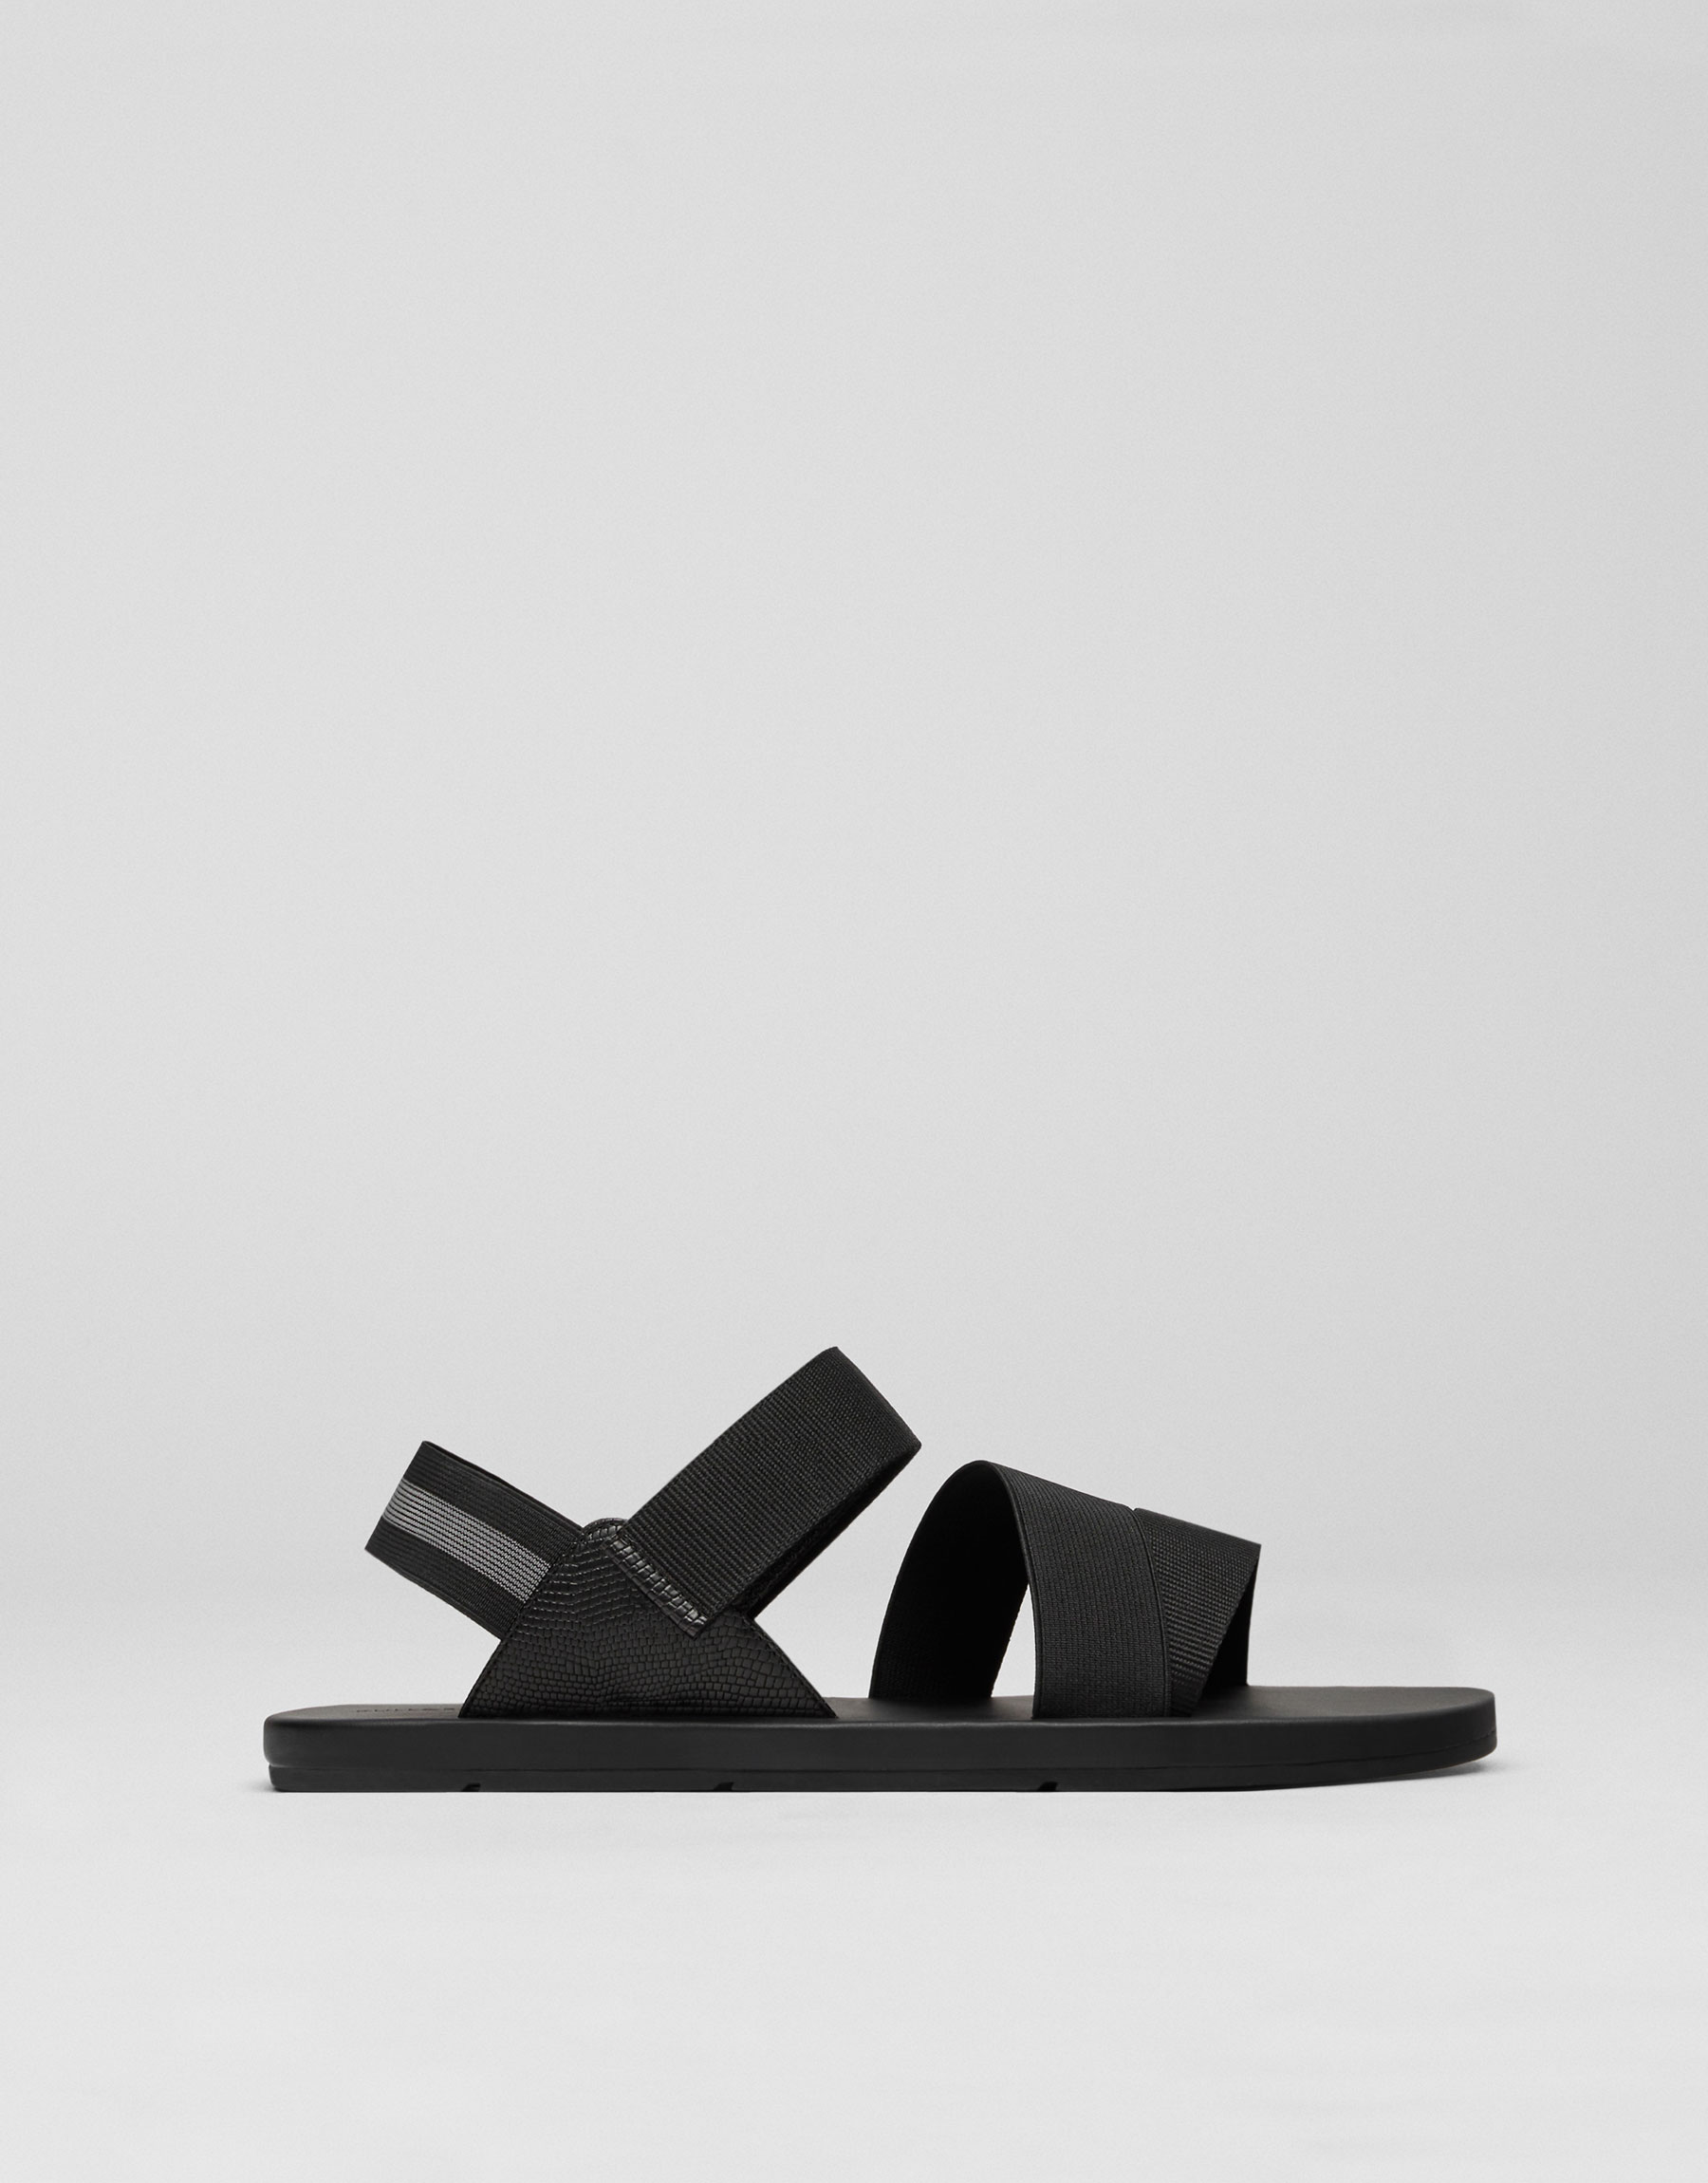 Athletic sandals with adjustable straps